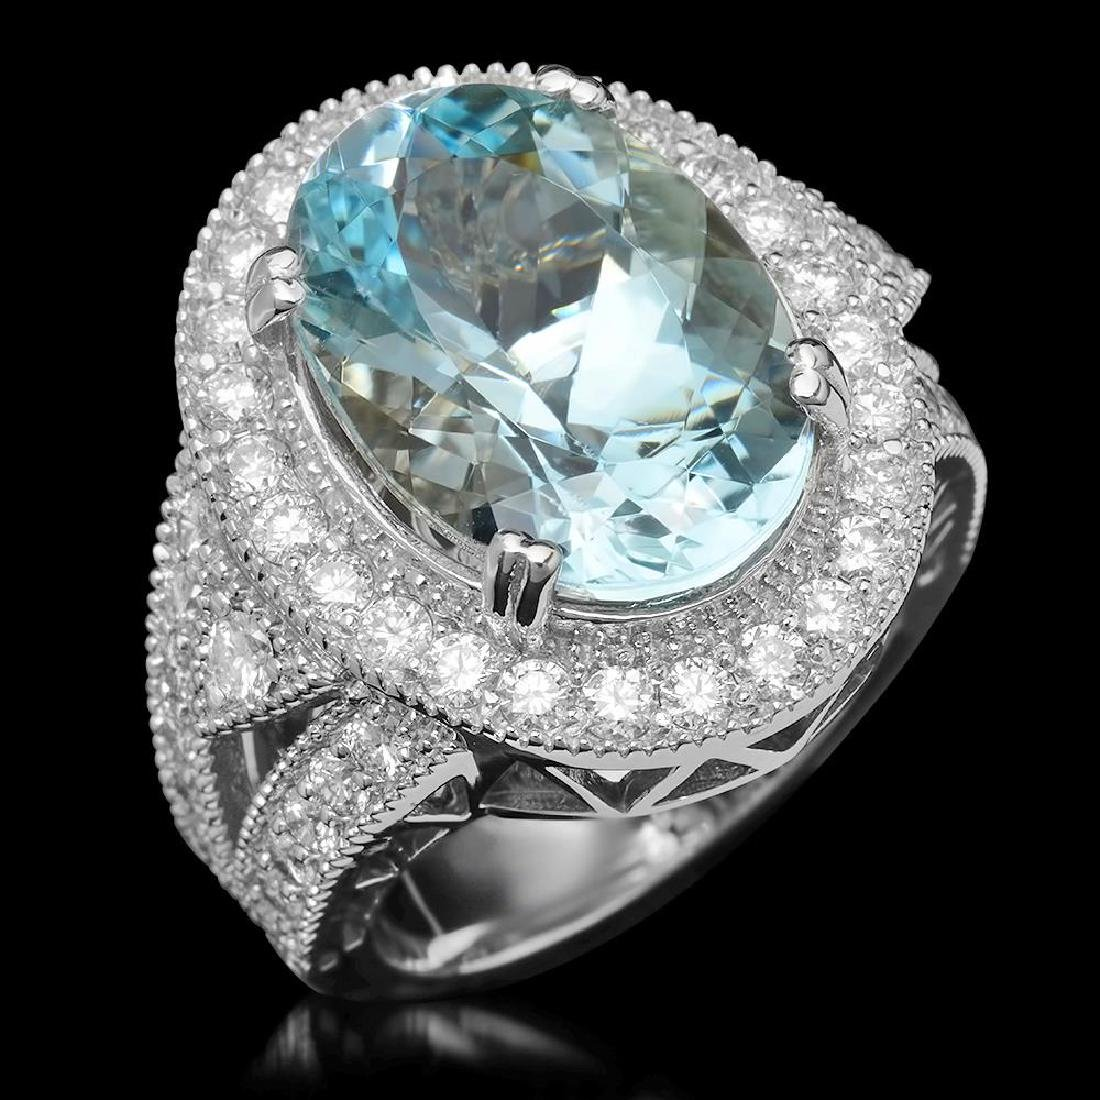 14K Gold 9.35ct Aquamarine & 1.85ct Diamond Ring